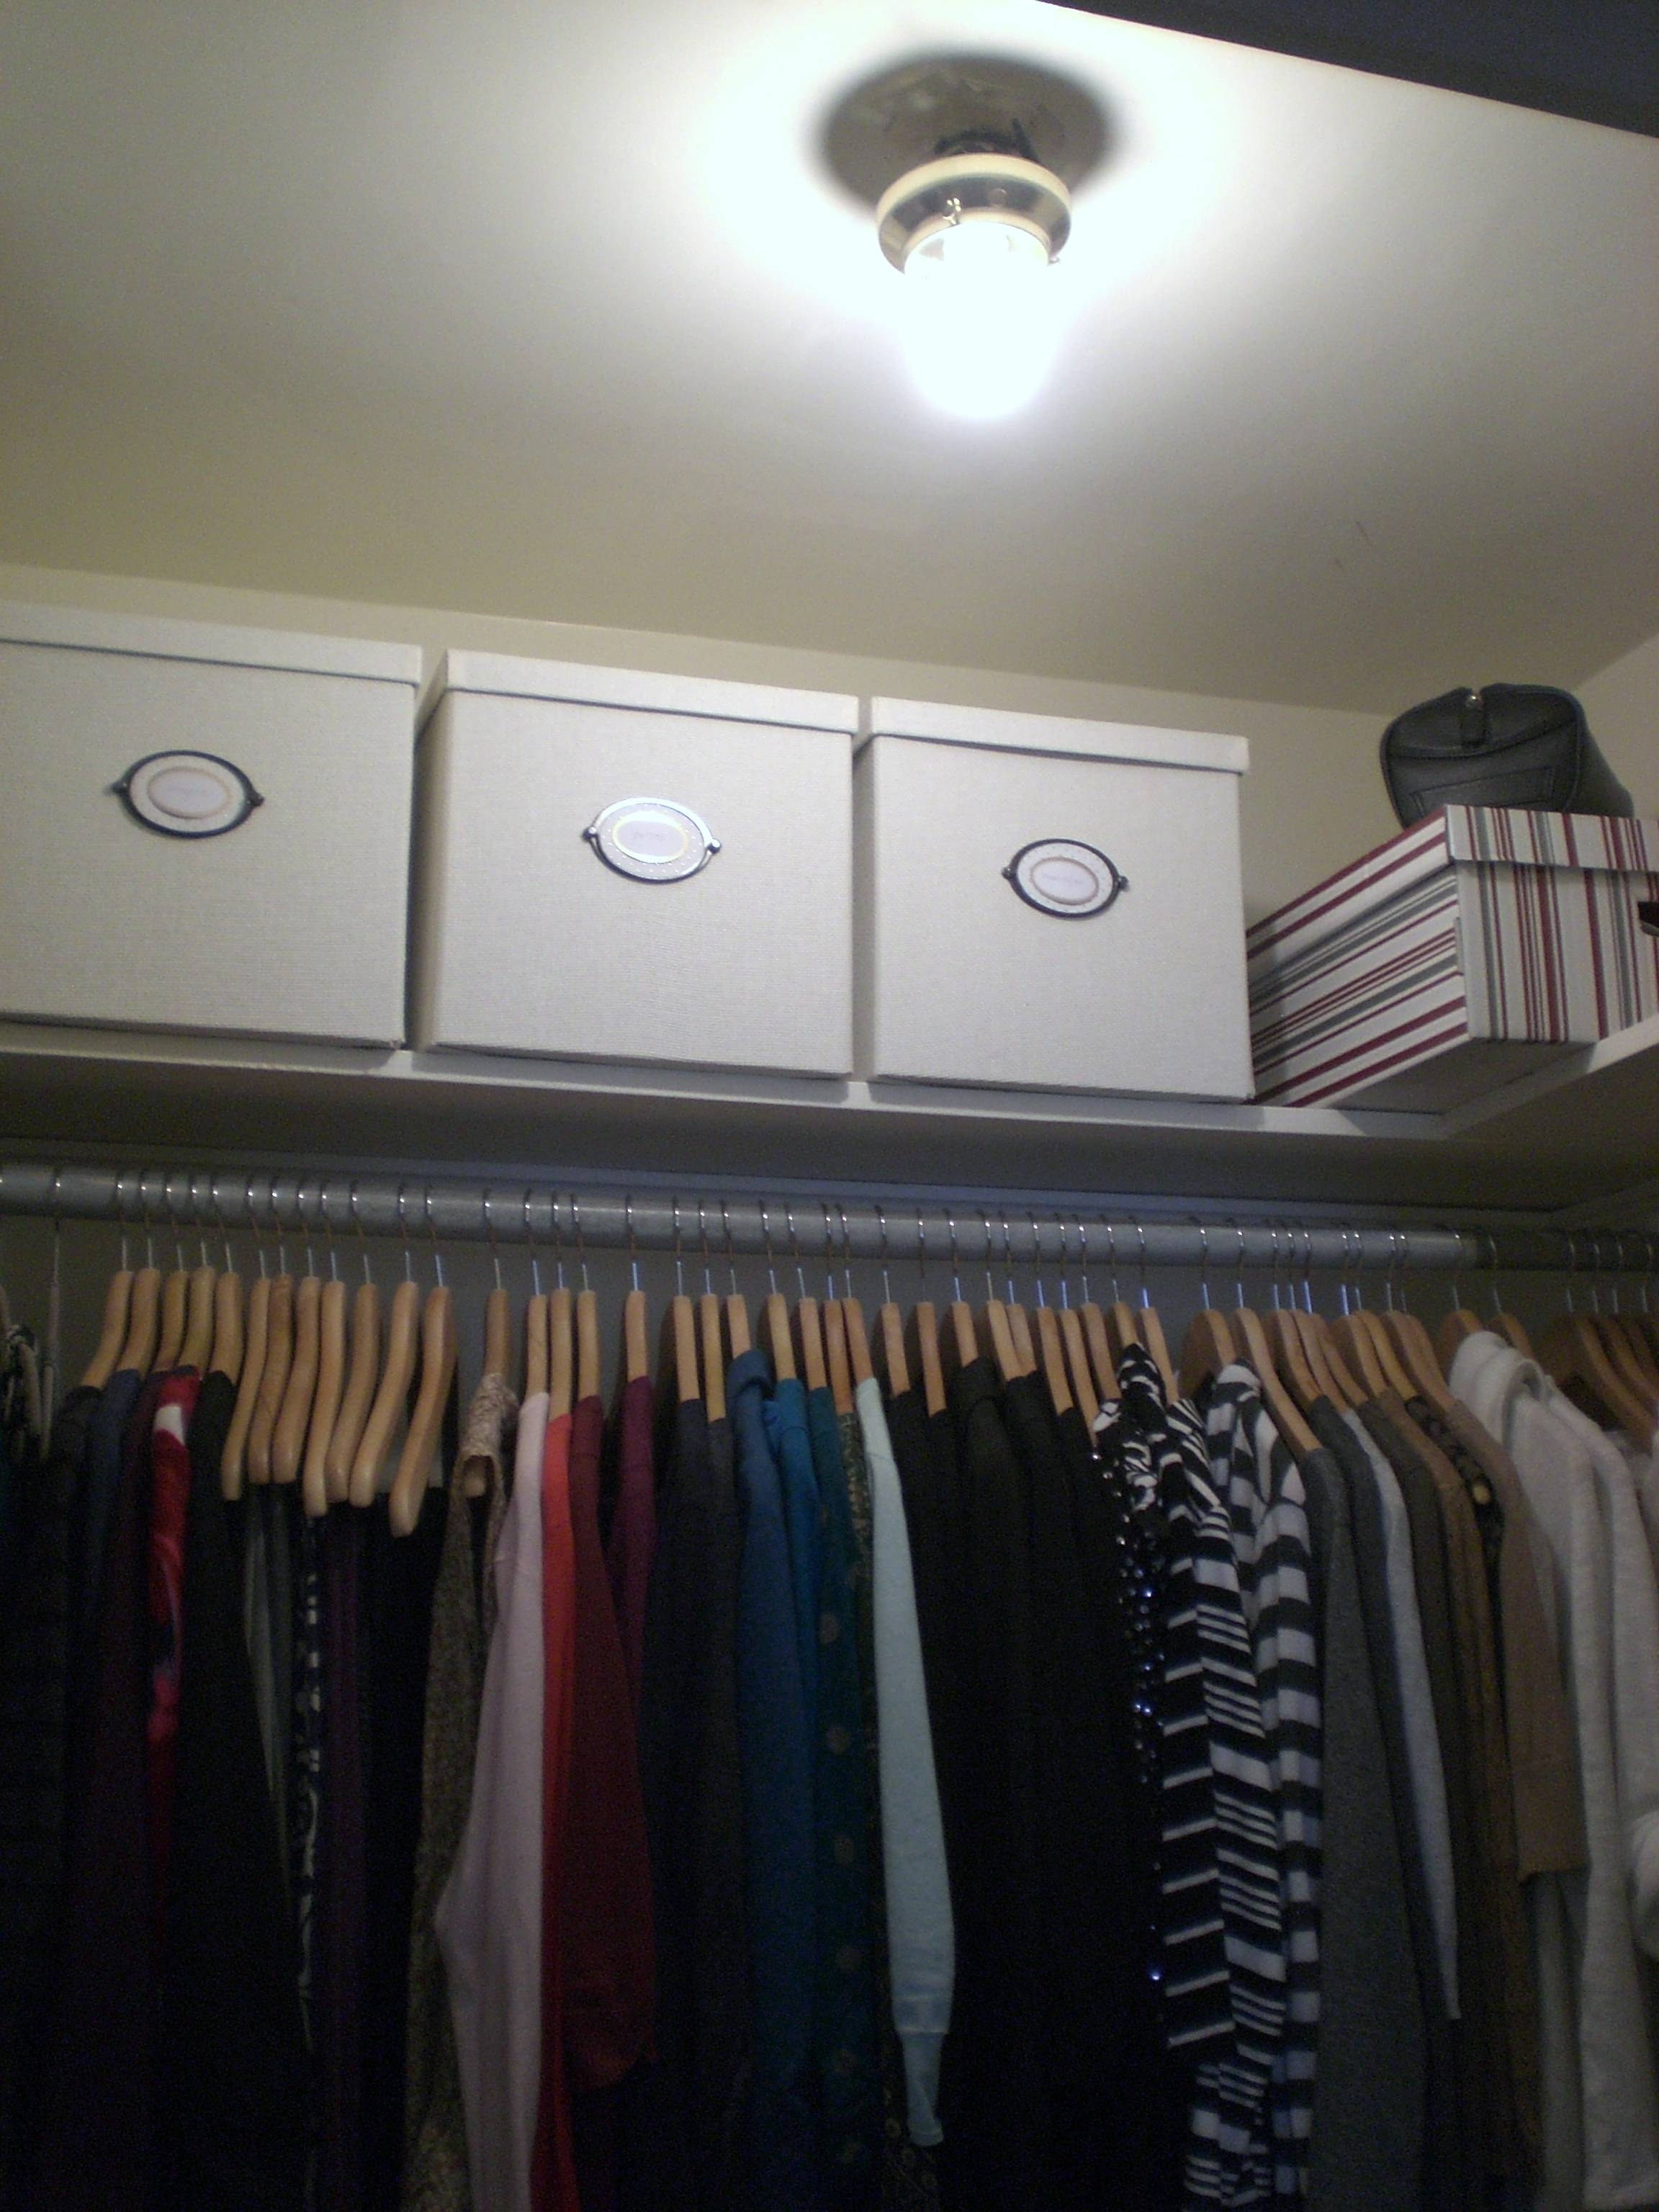 Bare Bulb To Classy Closet | pertaining to Bare Bulb Fixtures (Image 5 of 15)